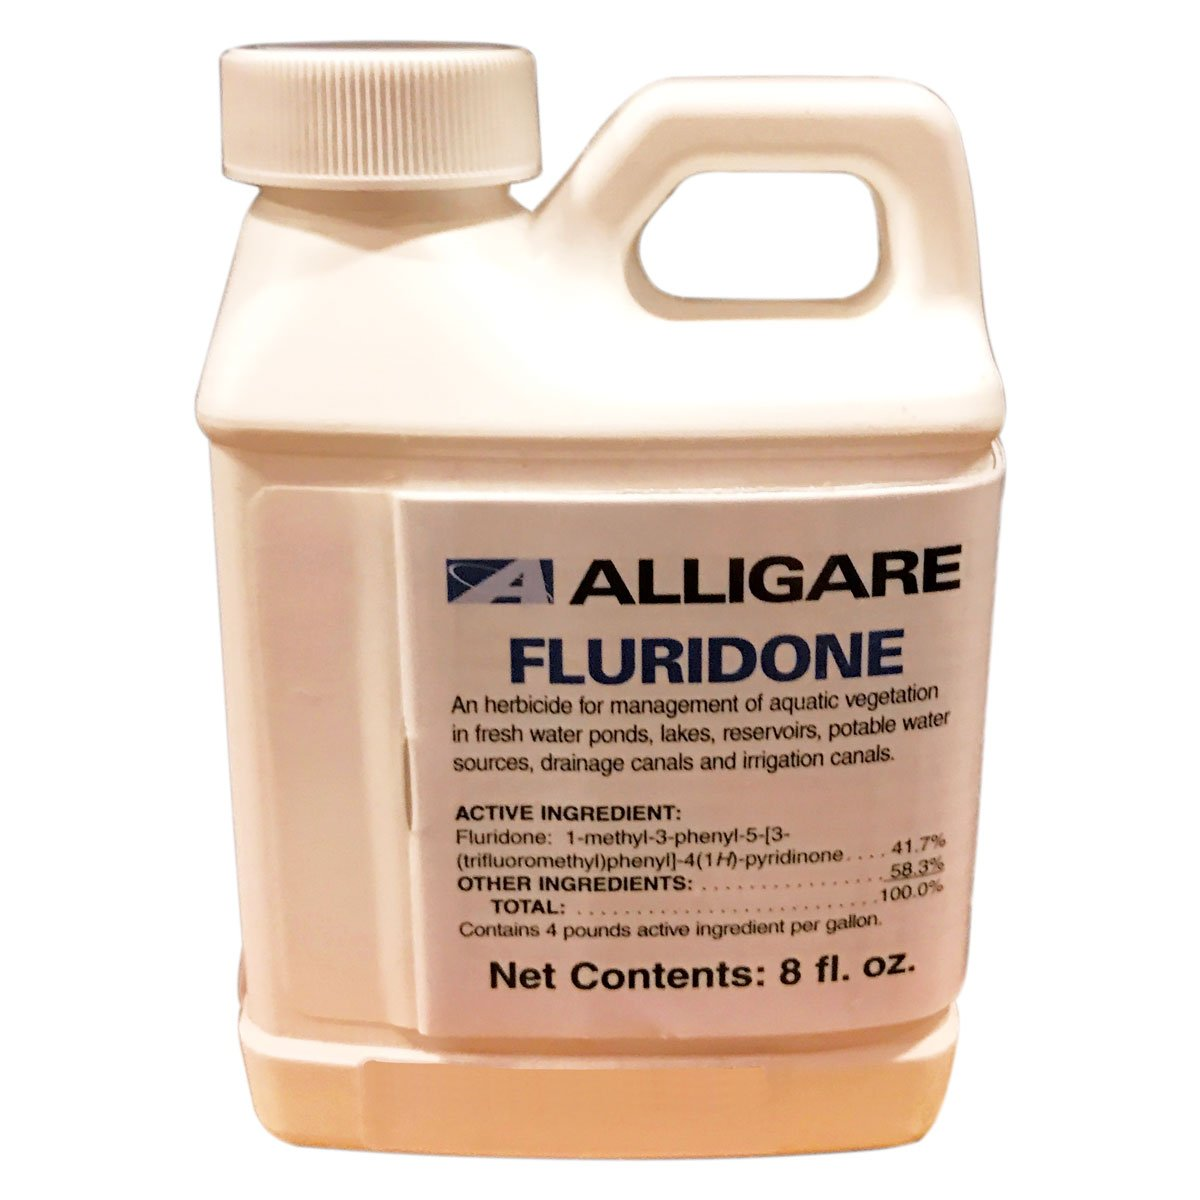 ALLIGARE Fluridone Aquatic Herbicide replaces Sepro Sonar AS, 8 oz